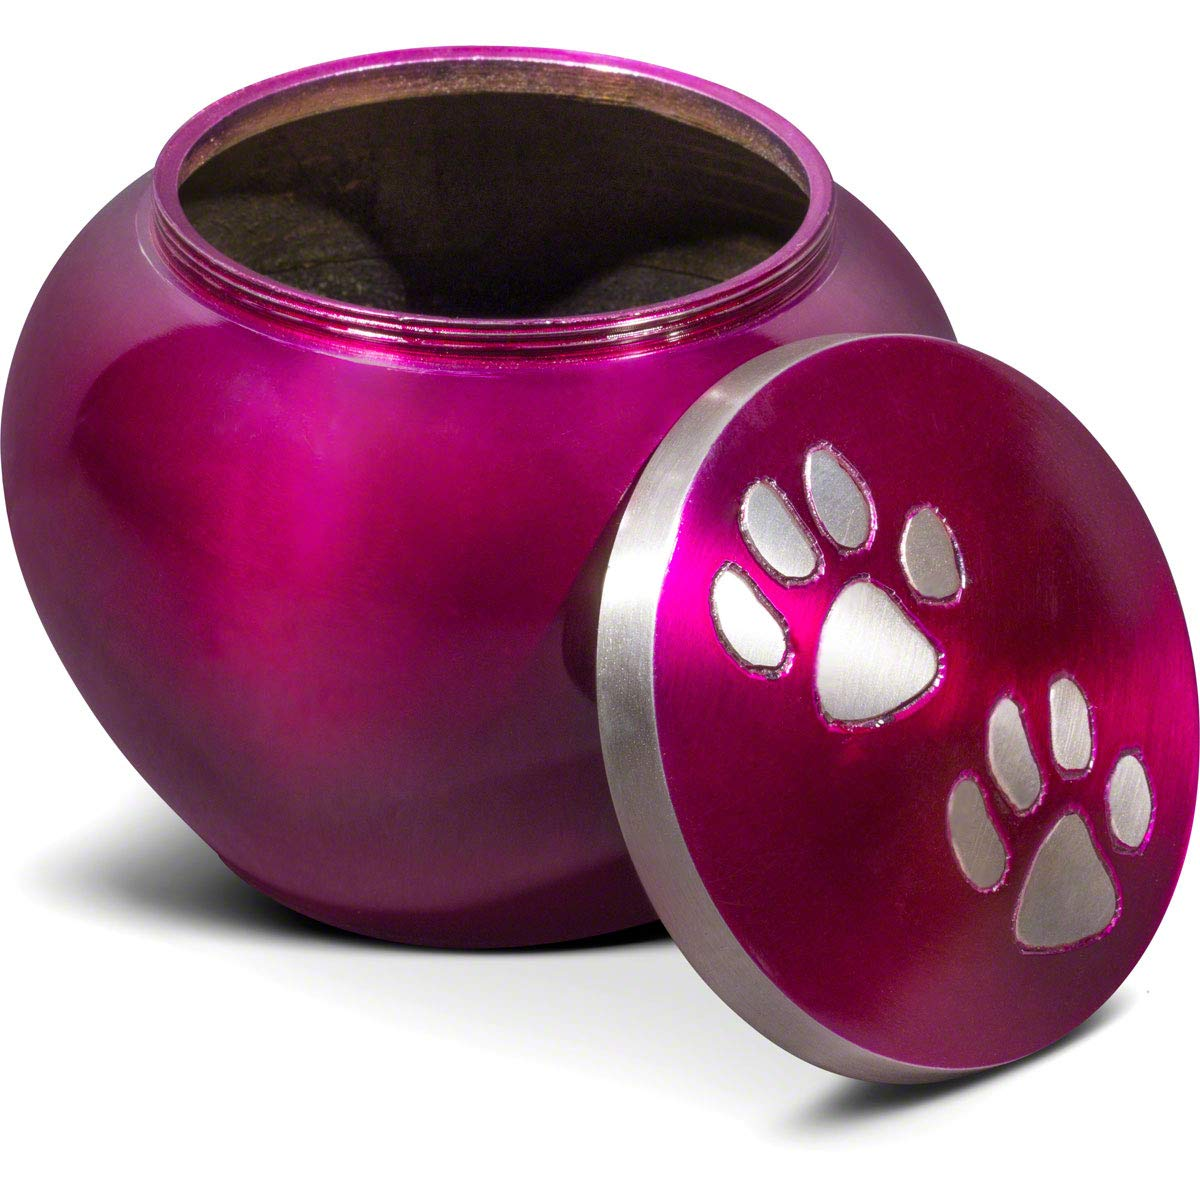 Best Friend Services Dog and Cat Pet Cremation Urn, The Mia Series in Deep Purple Color Finish and Hand Carved Pewter Paws, Small Size to Memorialize Pets up to 25lbs by Best Friend Services